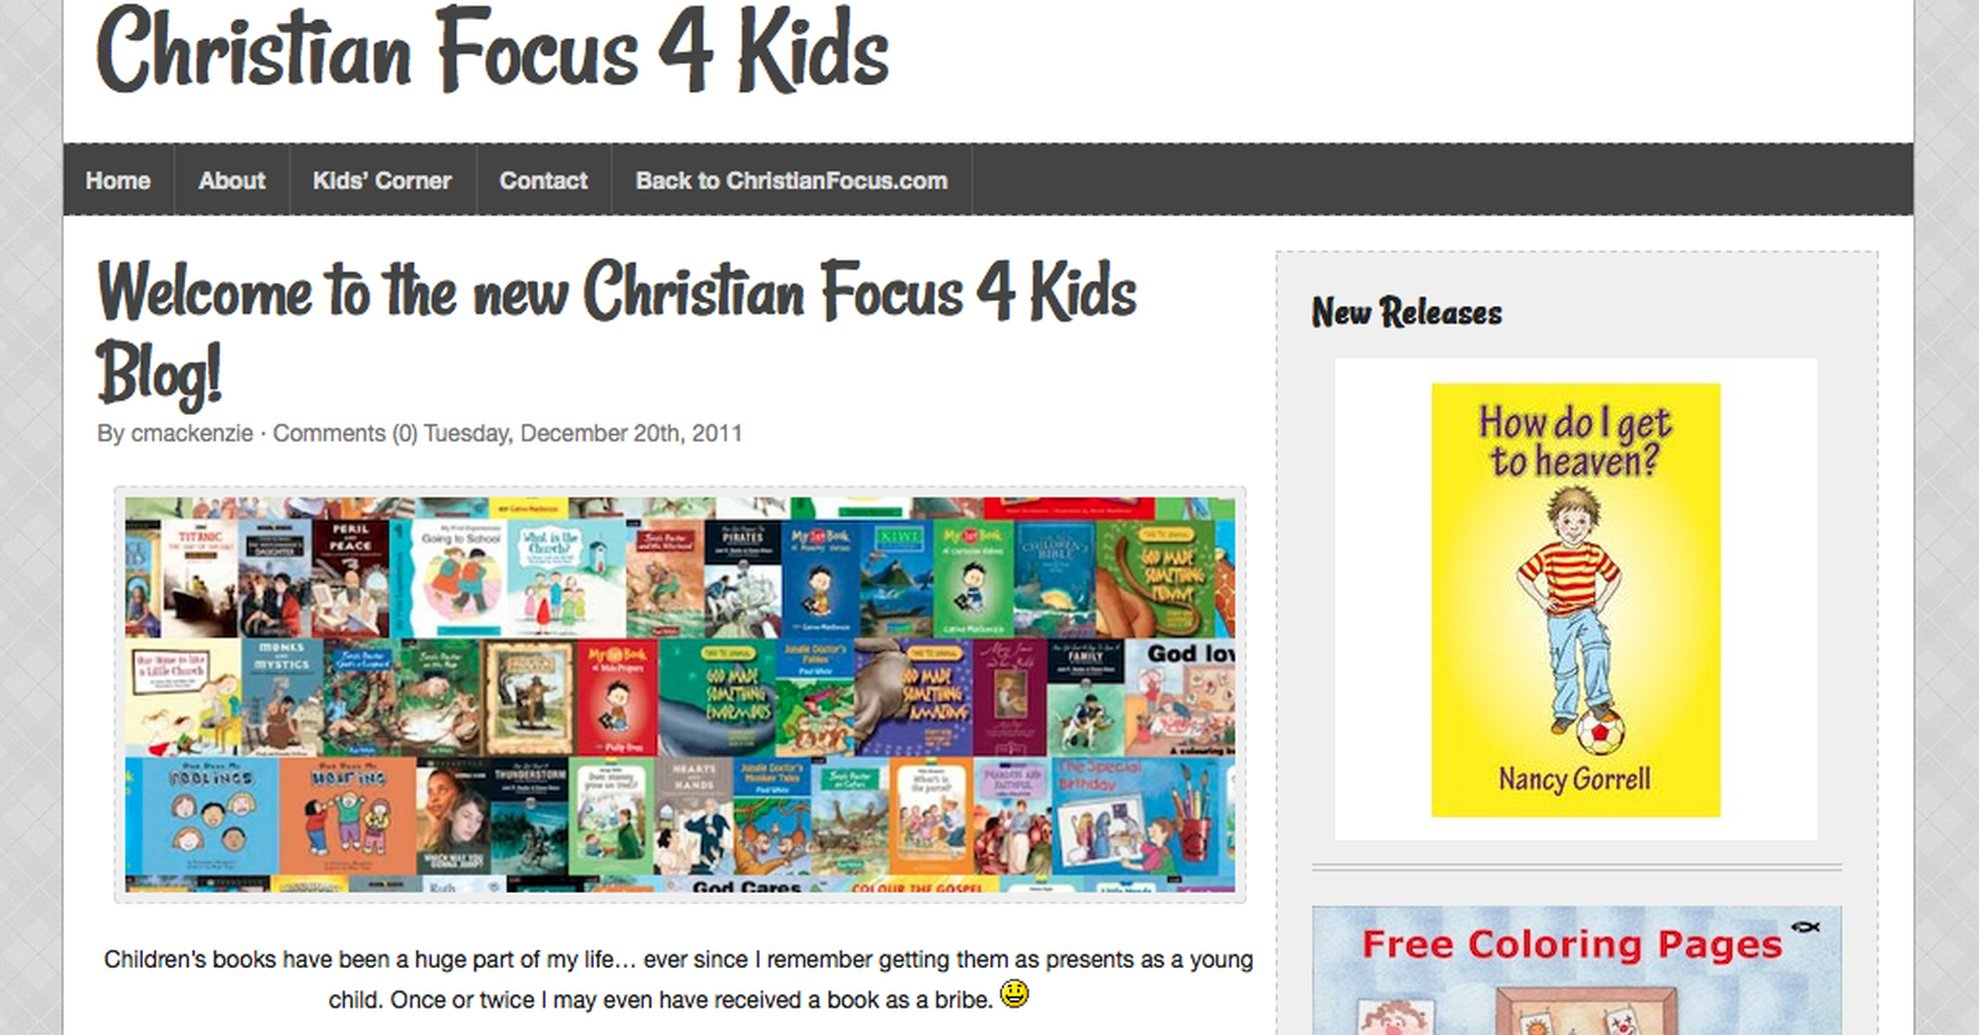 Announcing the New Christian Focus 4 Kids Blog